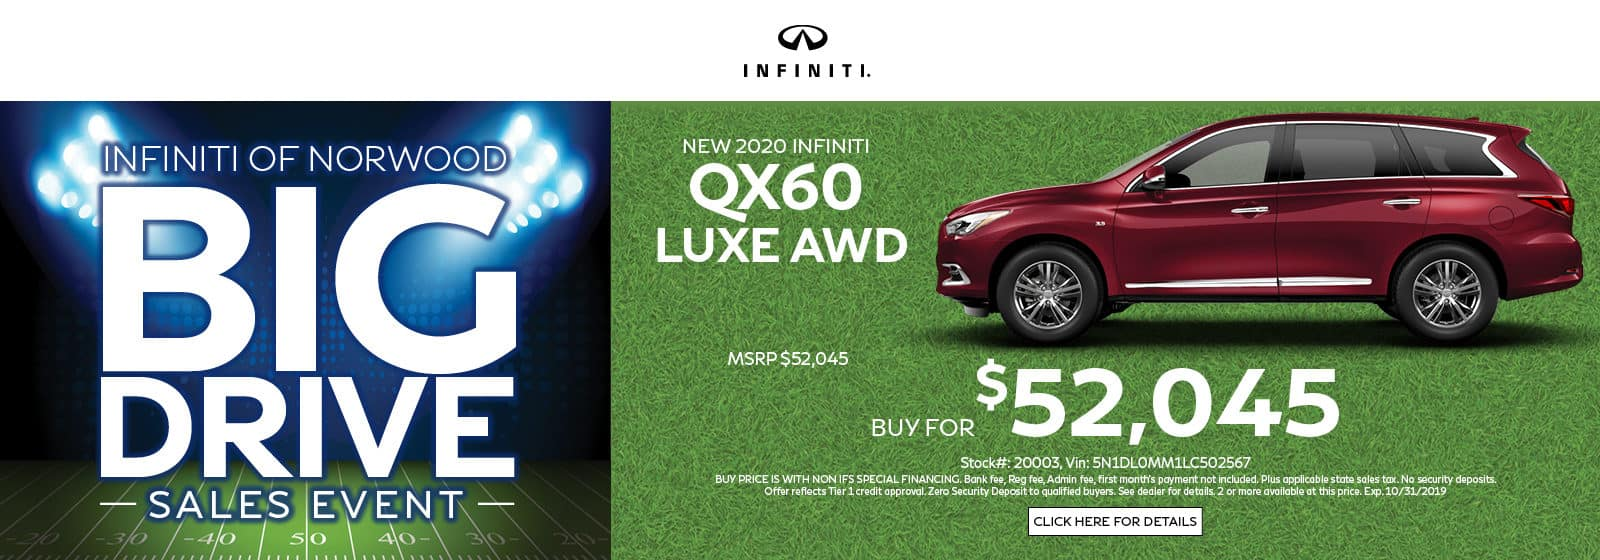 Buy a QX60 LUXE AWD for $52,045